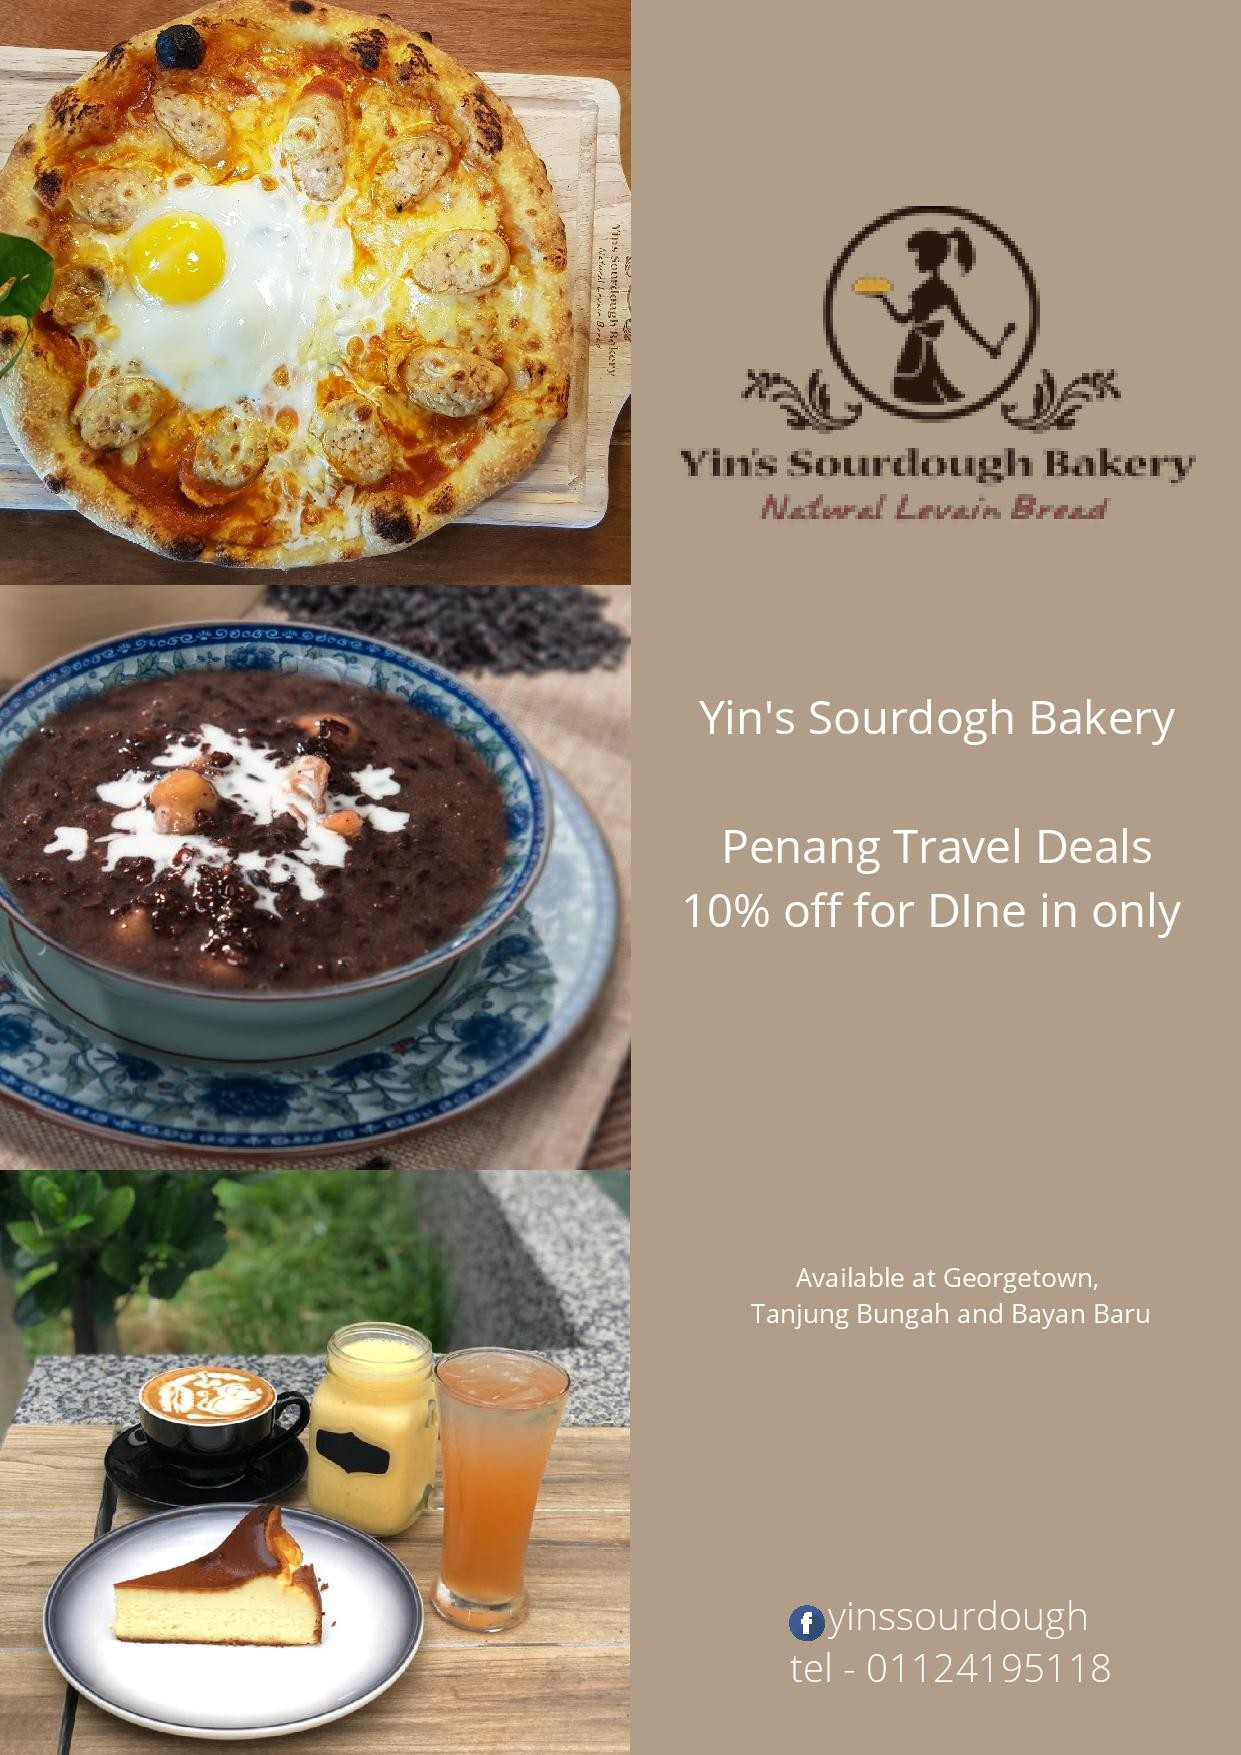 Yin's Sourdough Bakery and Cafe